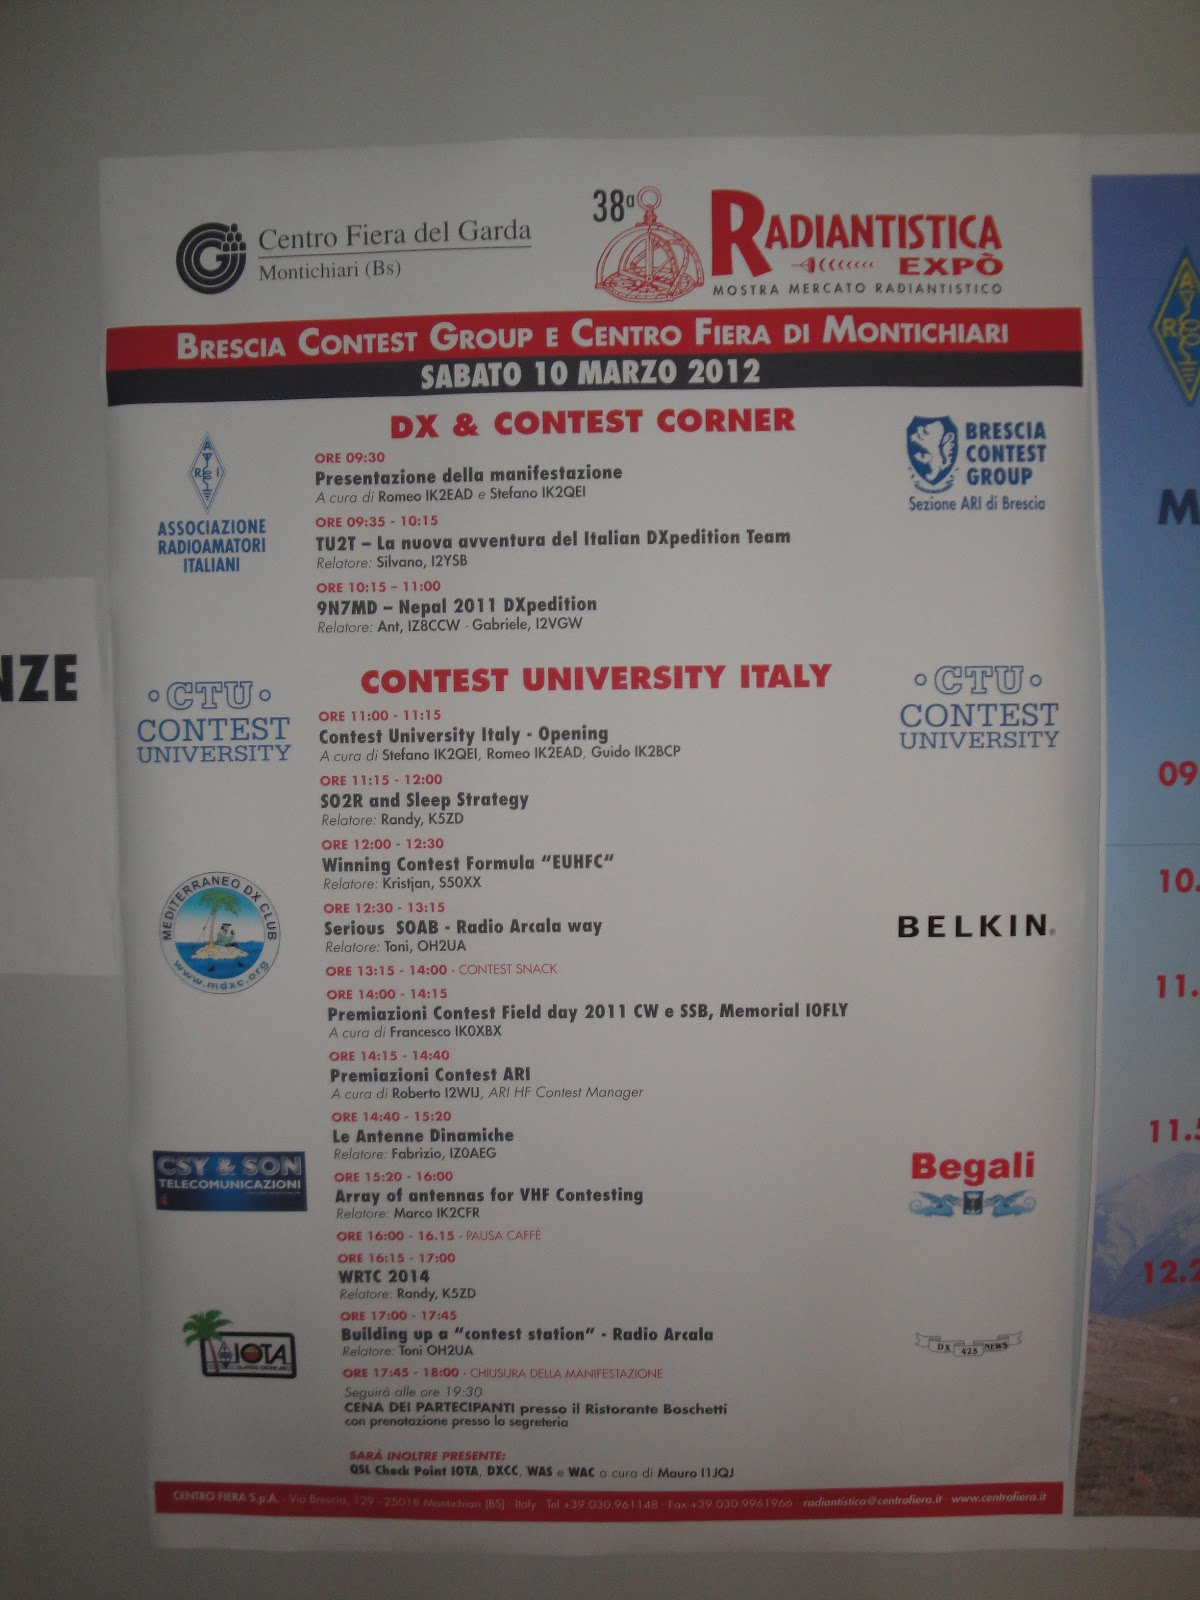 italy sweepstakes sv2dcd ctu contest university italy 2012 6462